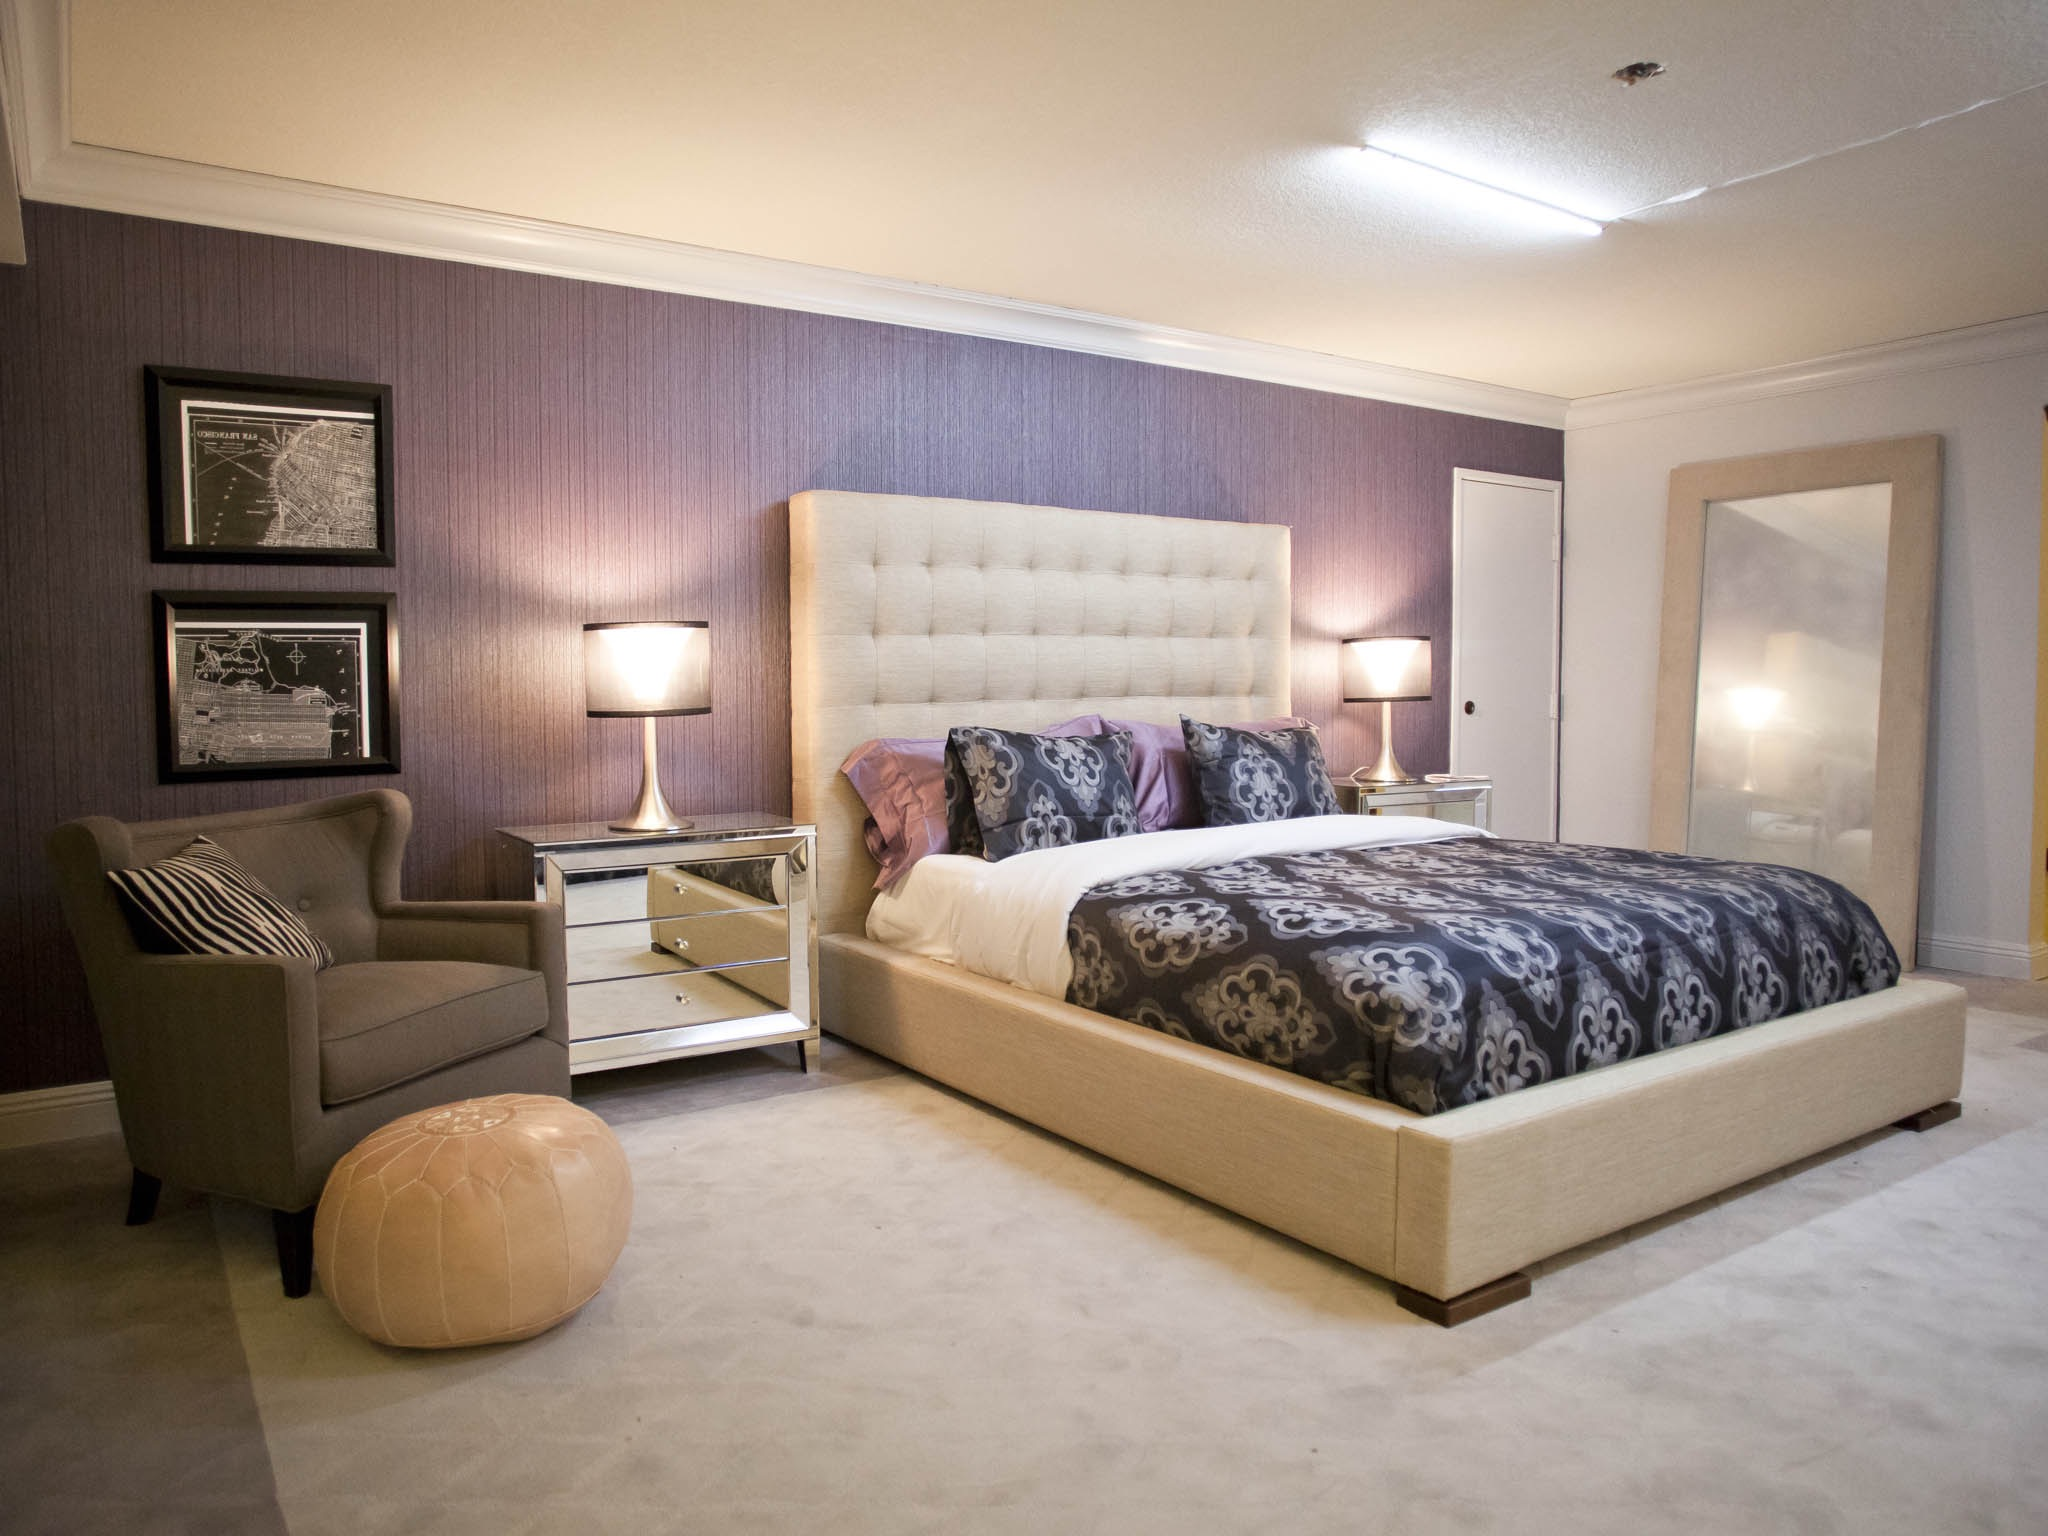 purple paint for bedroom 20 lovely bedroom paint and color ideas 16569 bedroom ideas 16881